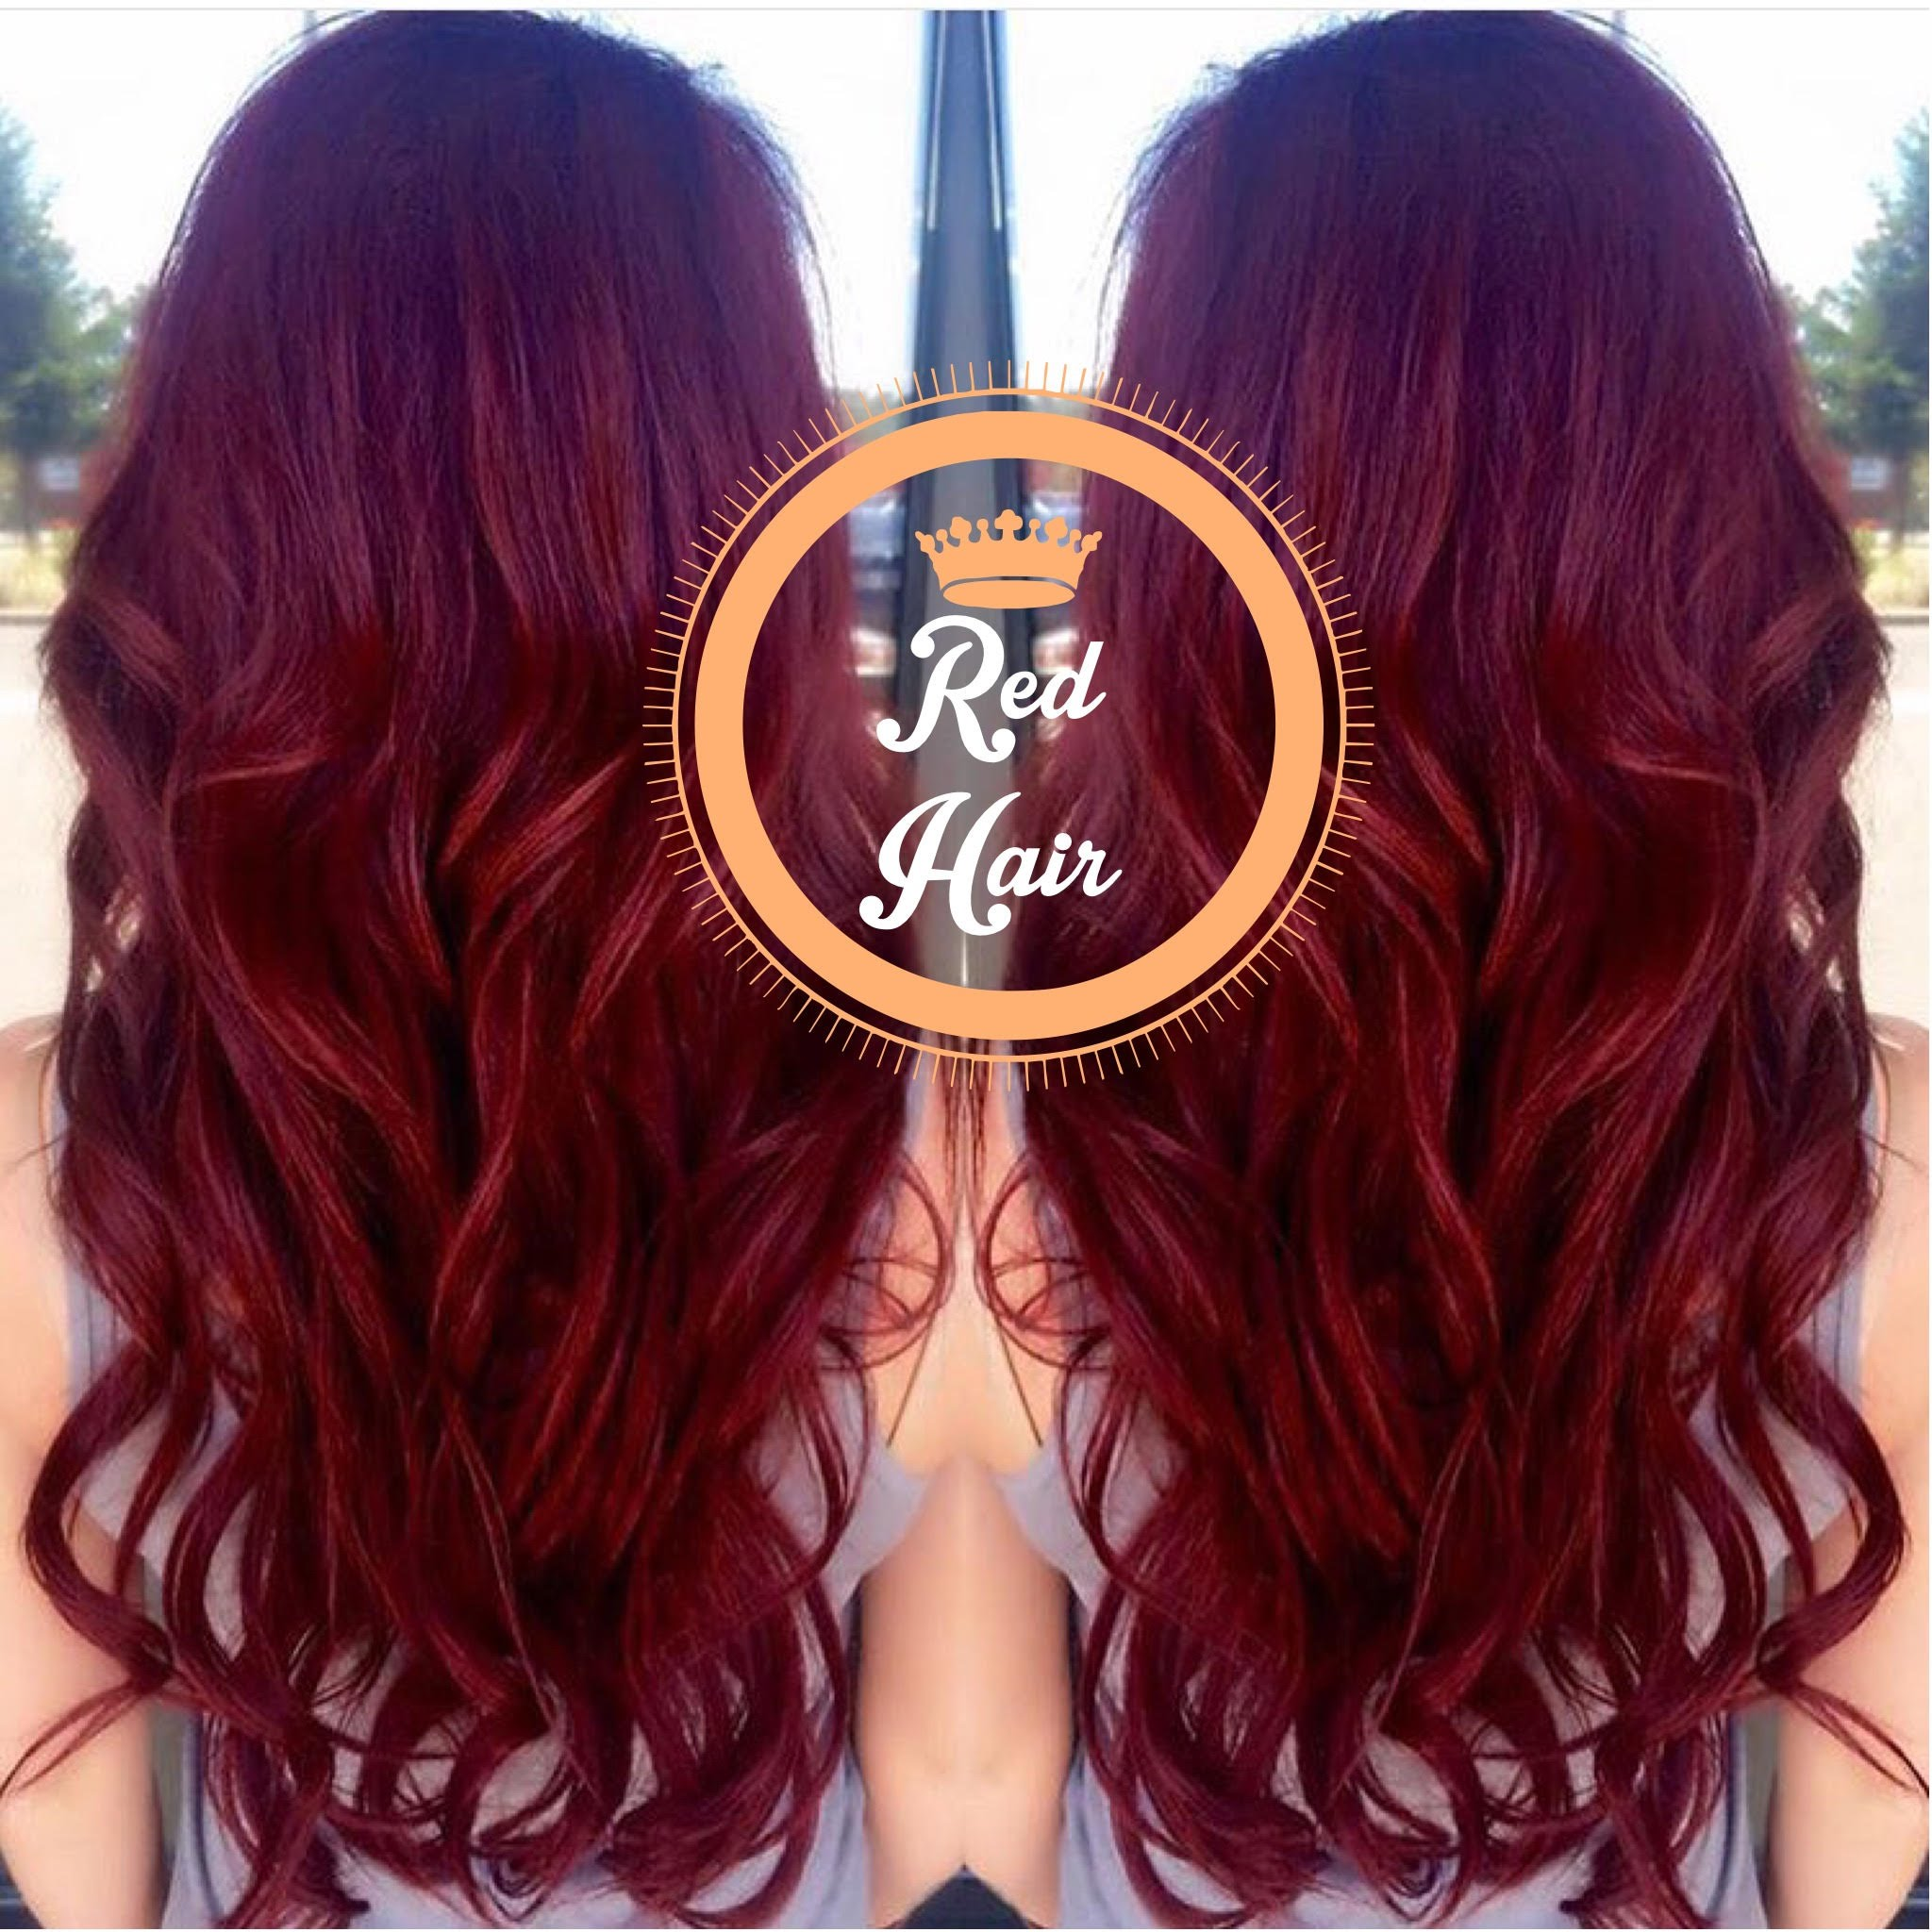 Watercolor Shampoo For Red Hair